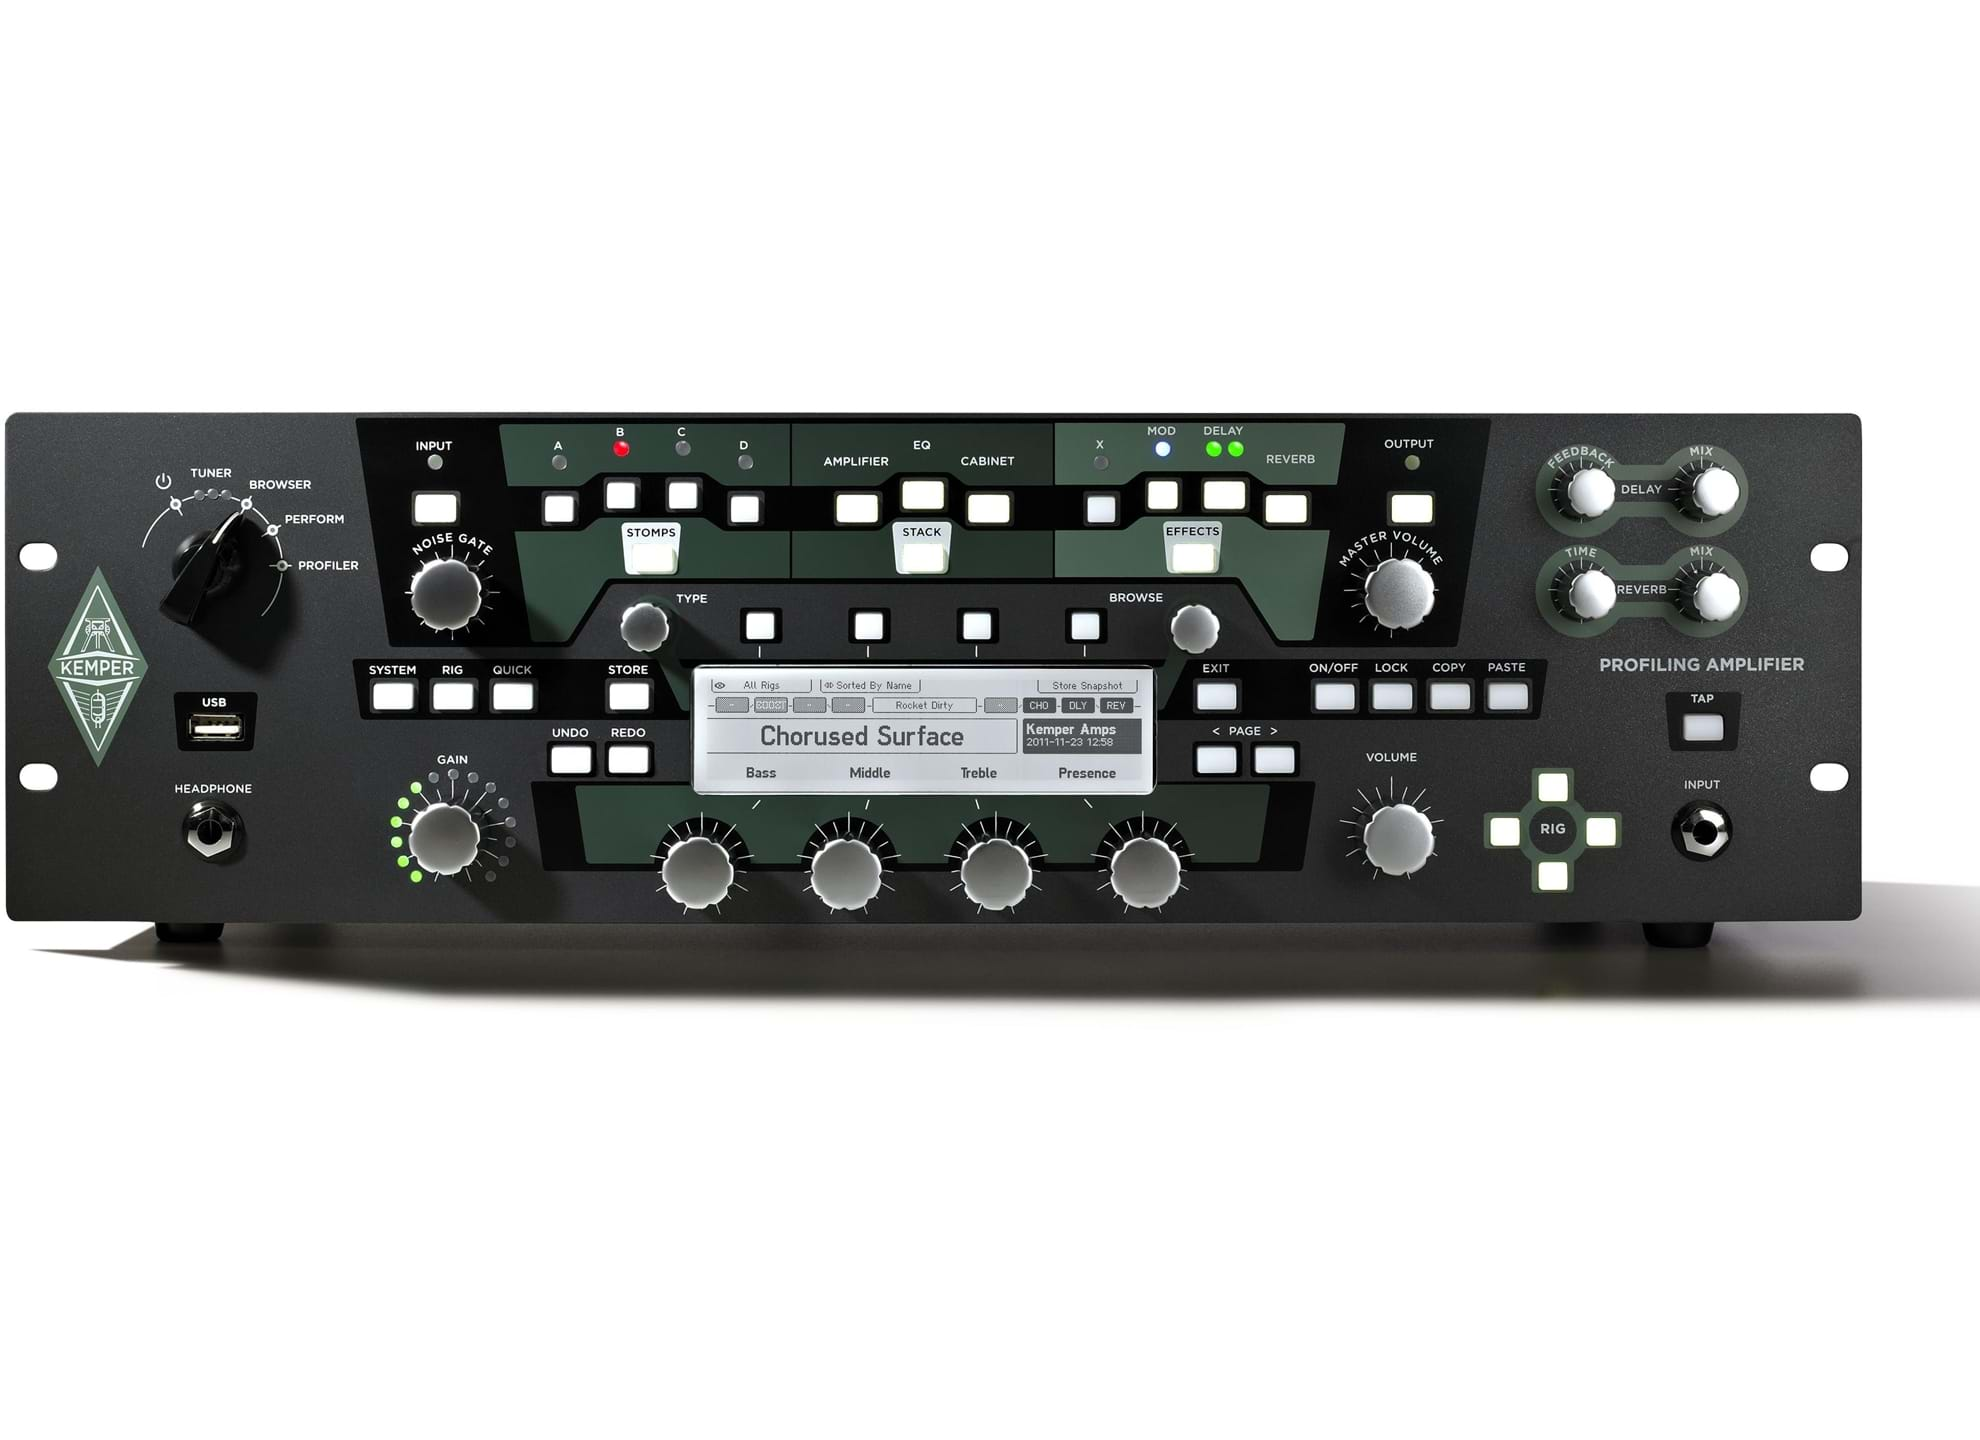 Kemper Profiling Amplifier Powerrack P 229 Emusic Se